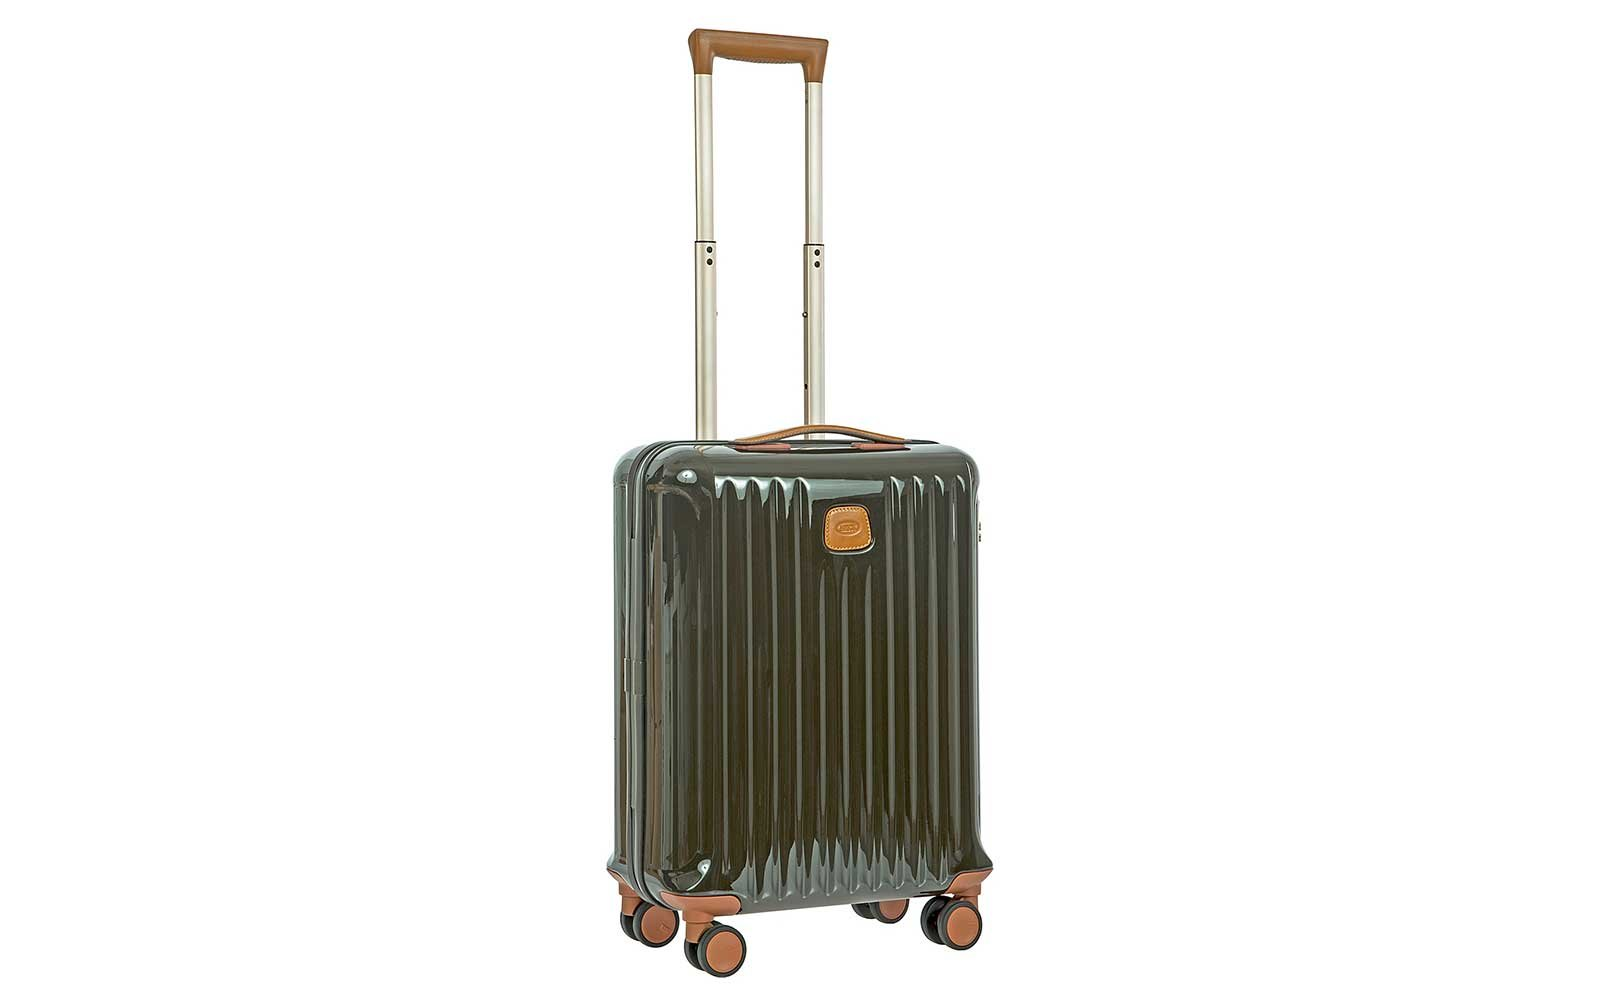 Olive Suitcase from Brics